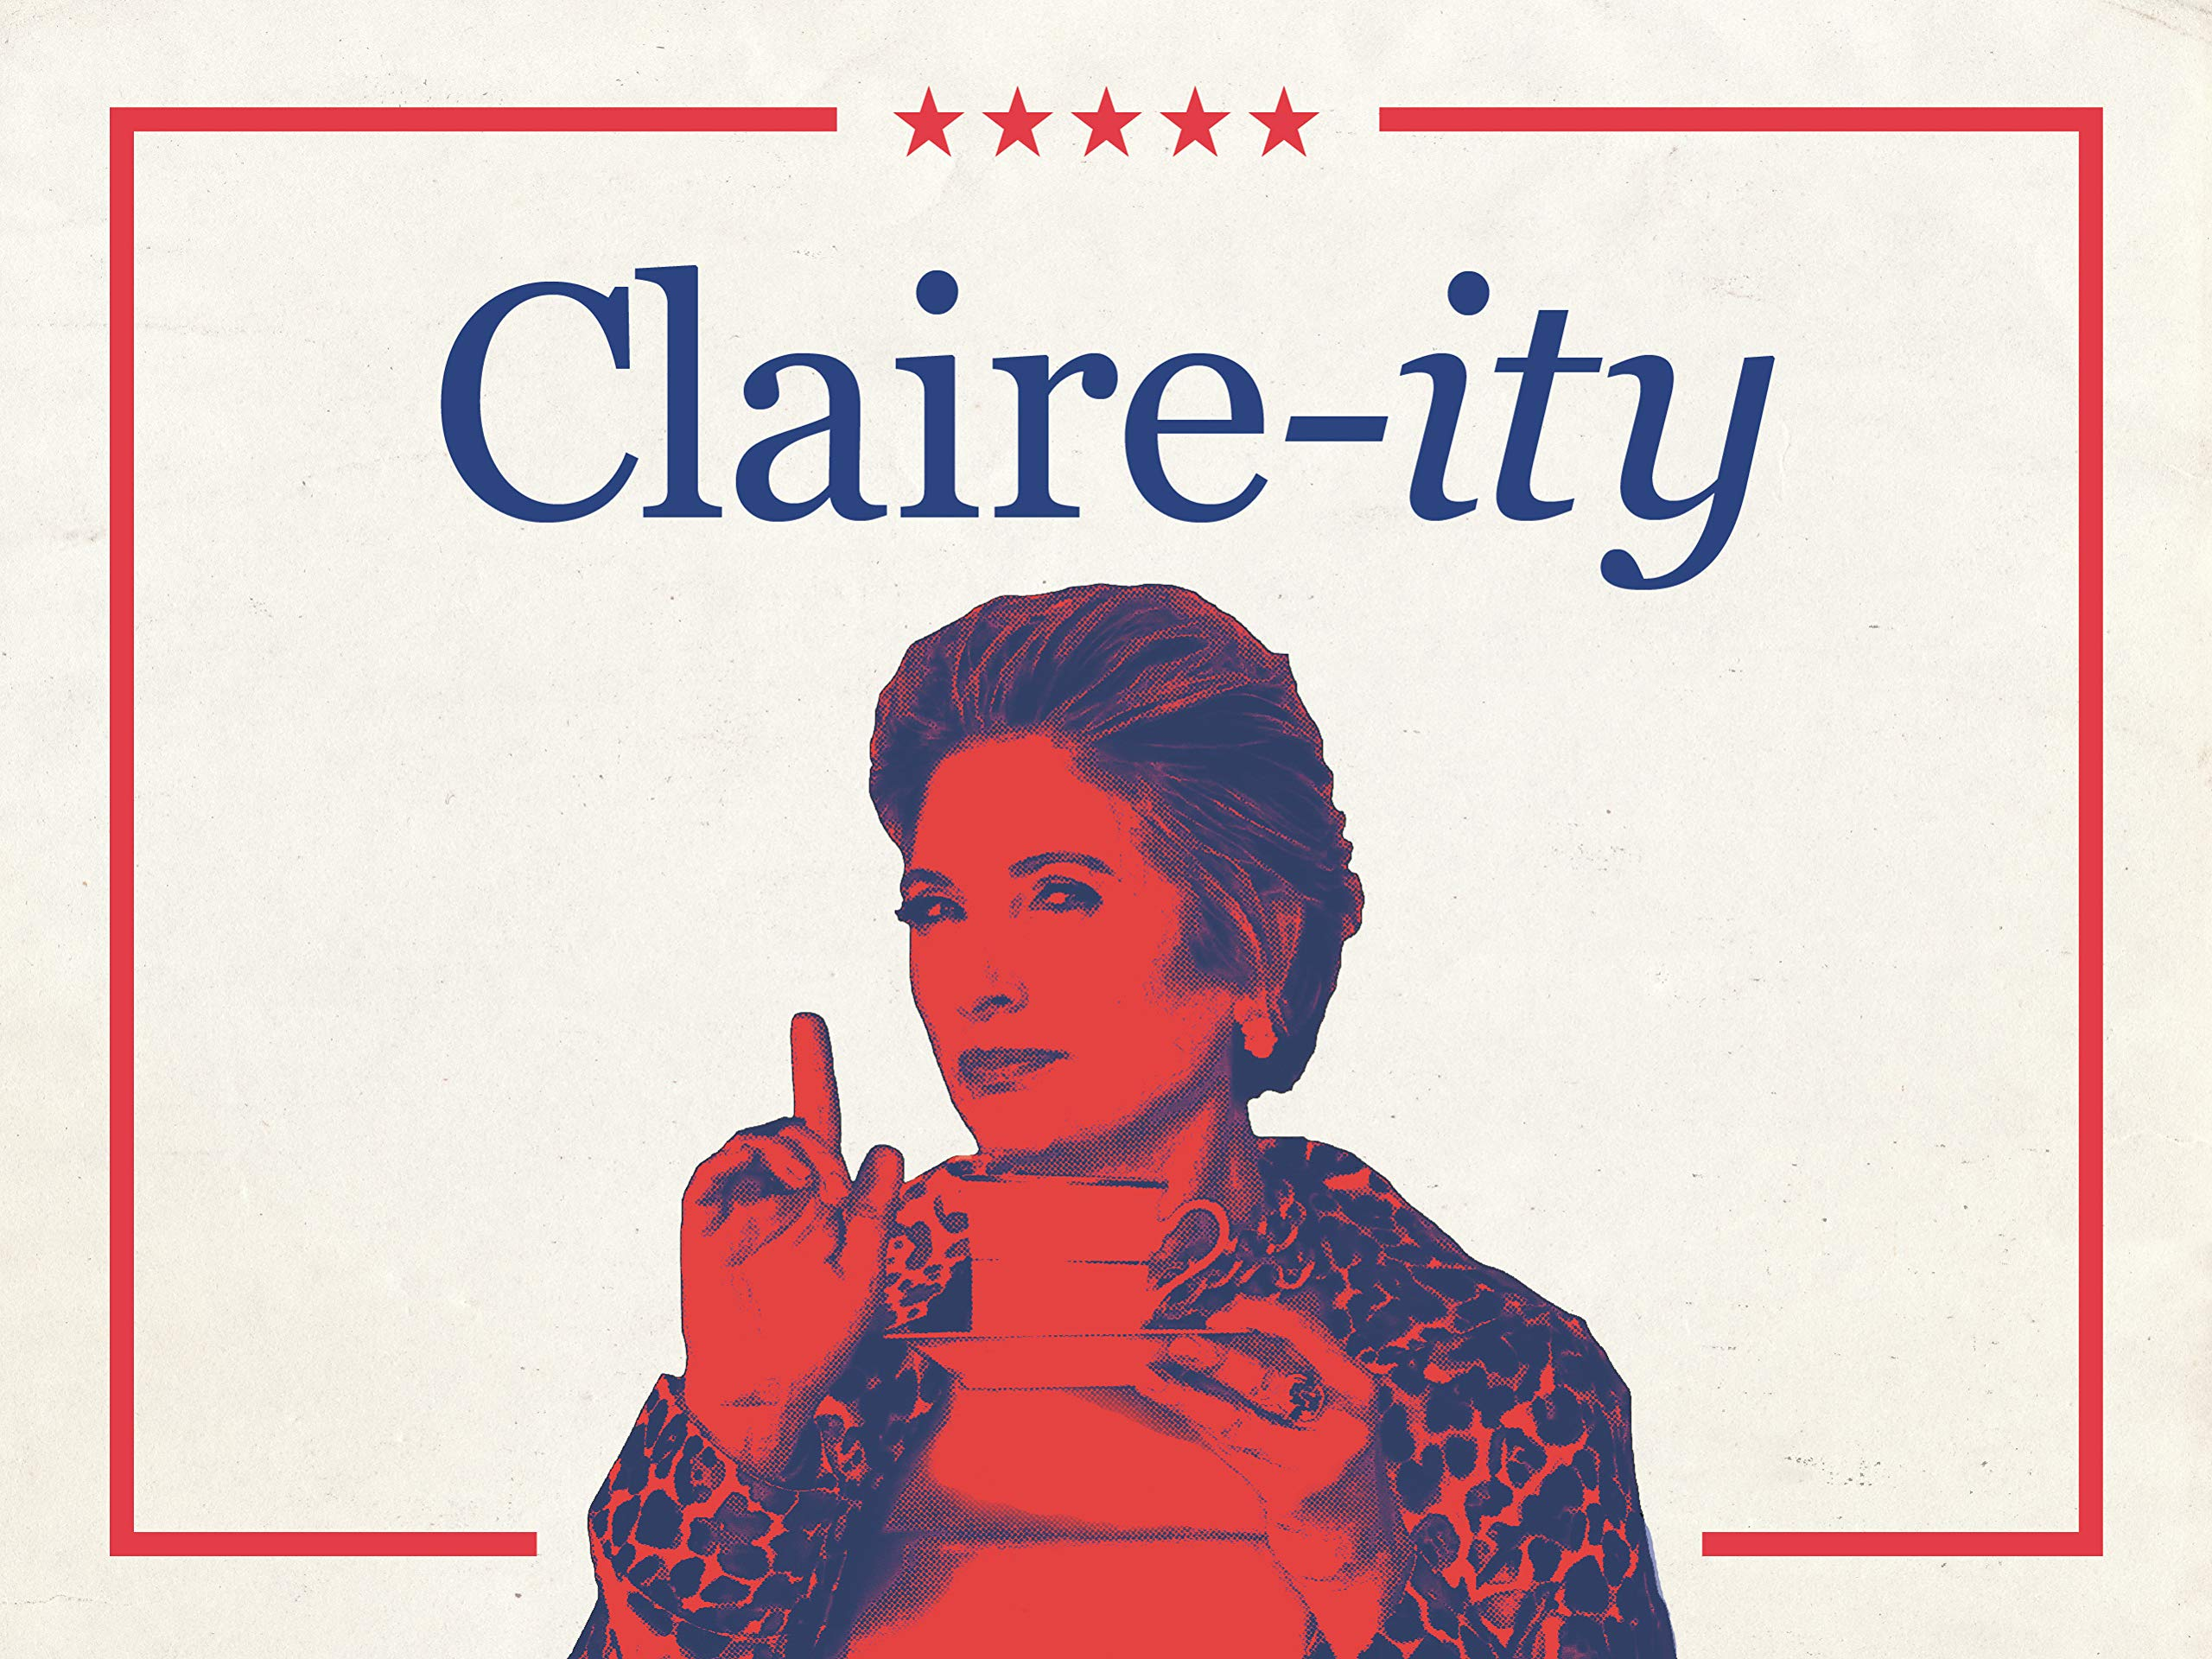 Claire-ity